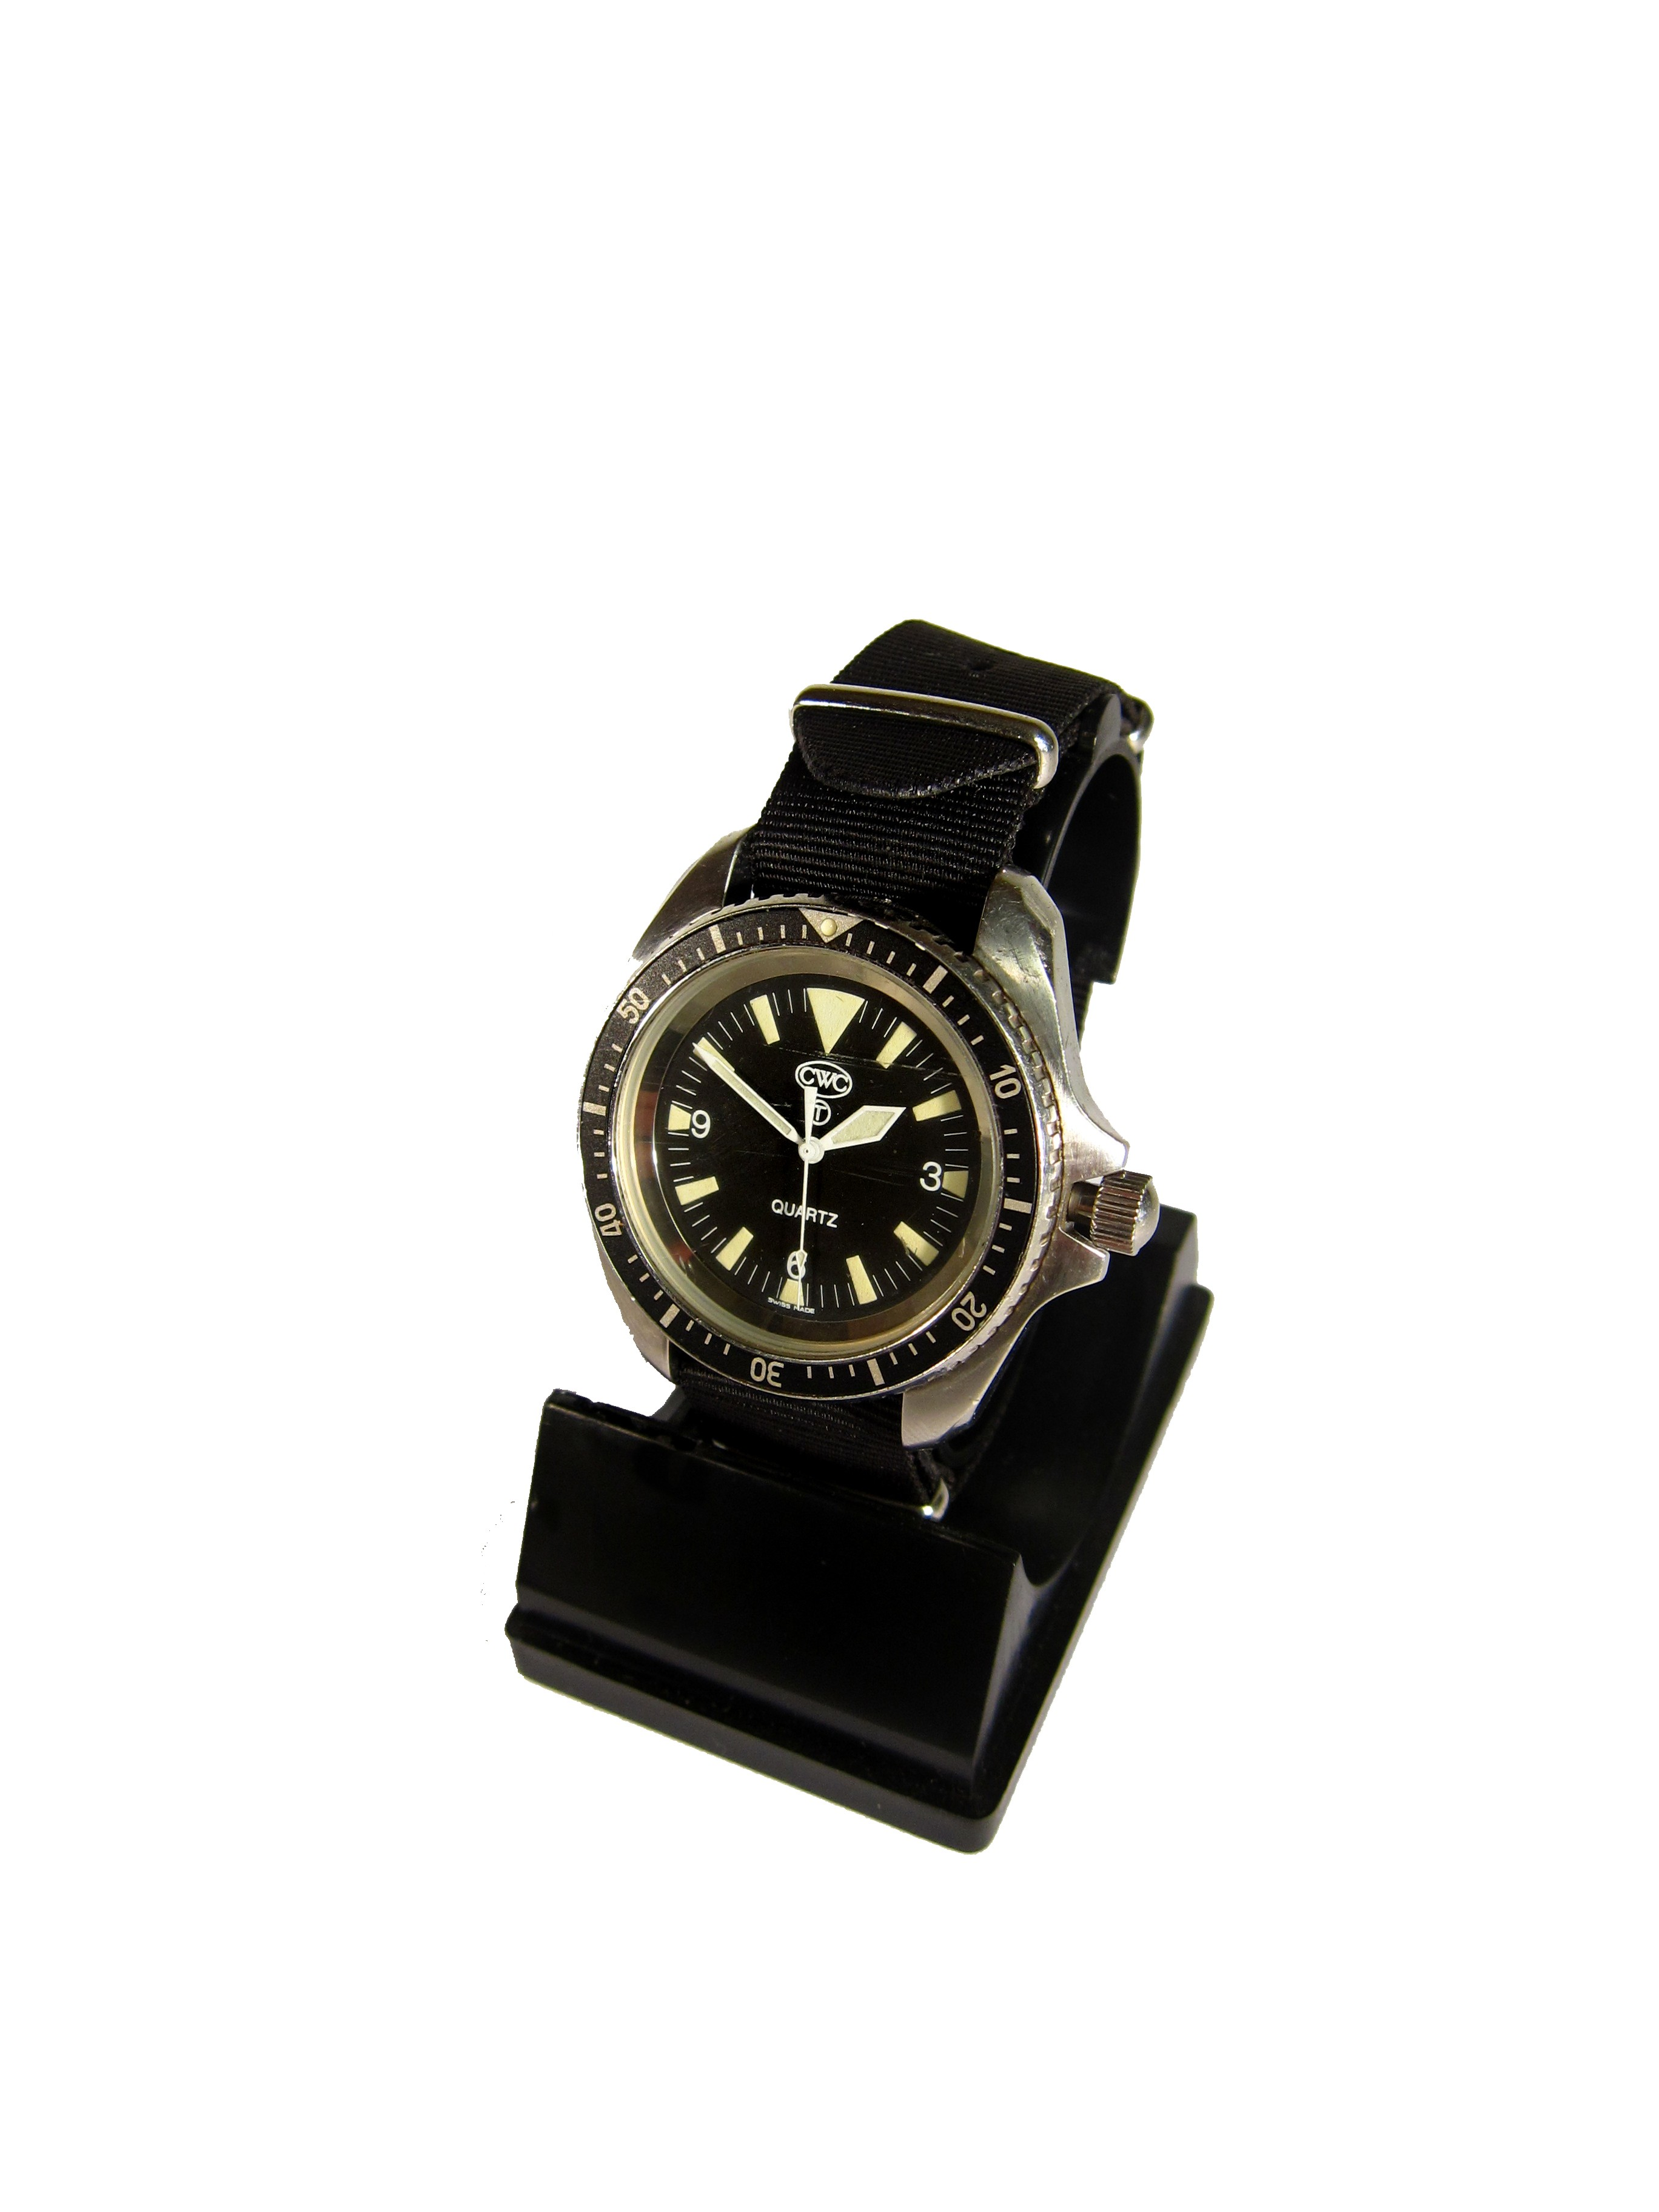 Cwc Divers Watch Vintage Military Watches